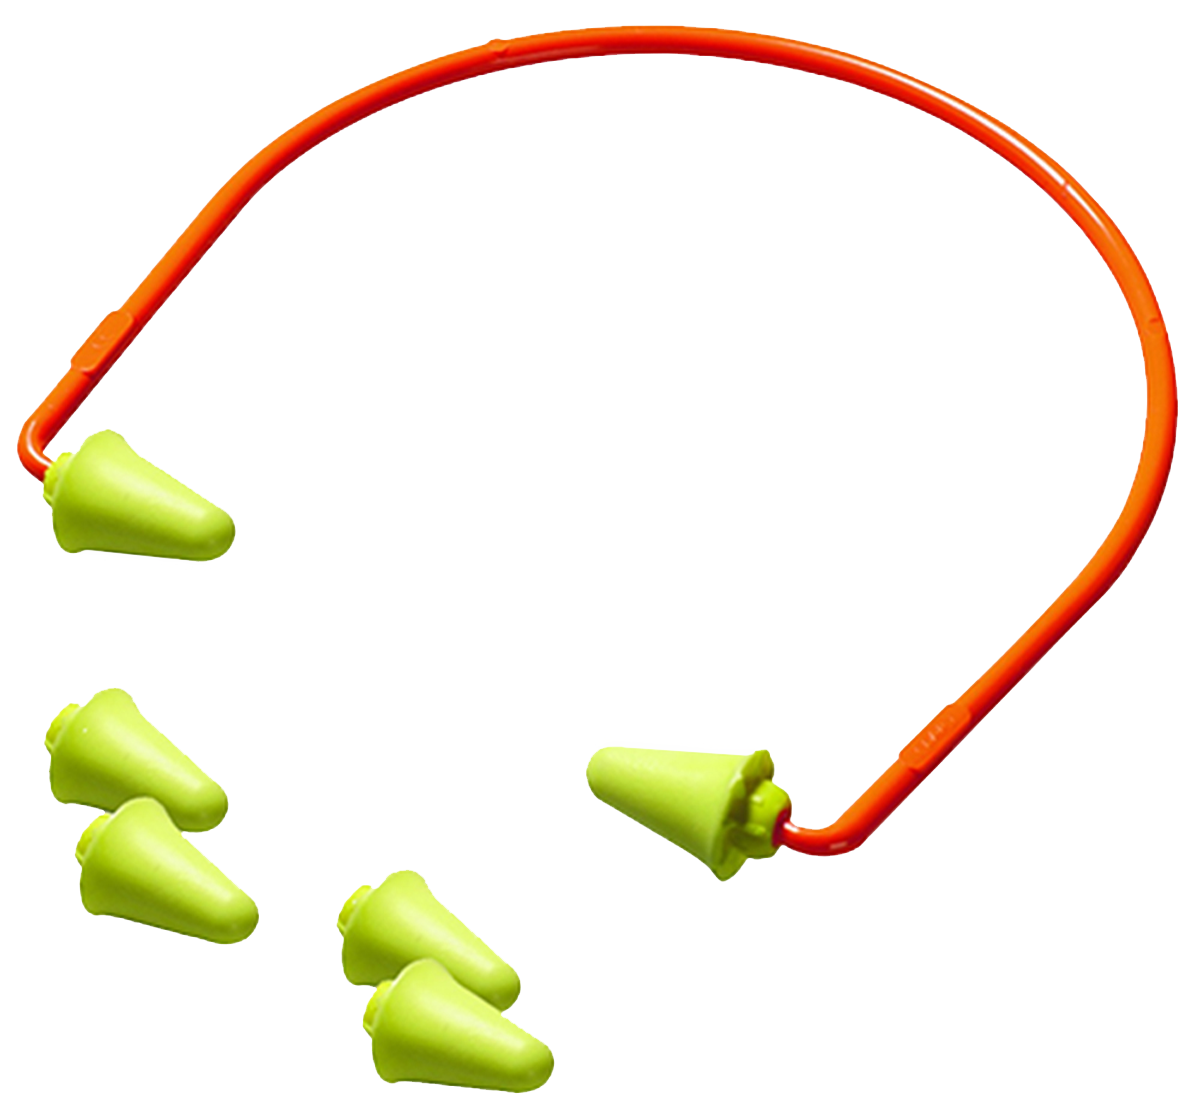 3M Peltor 97065 Banded Earplugs 28 dB Orange 1 Pair